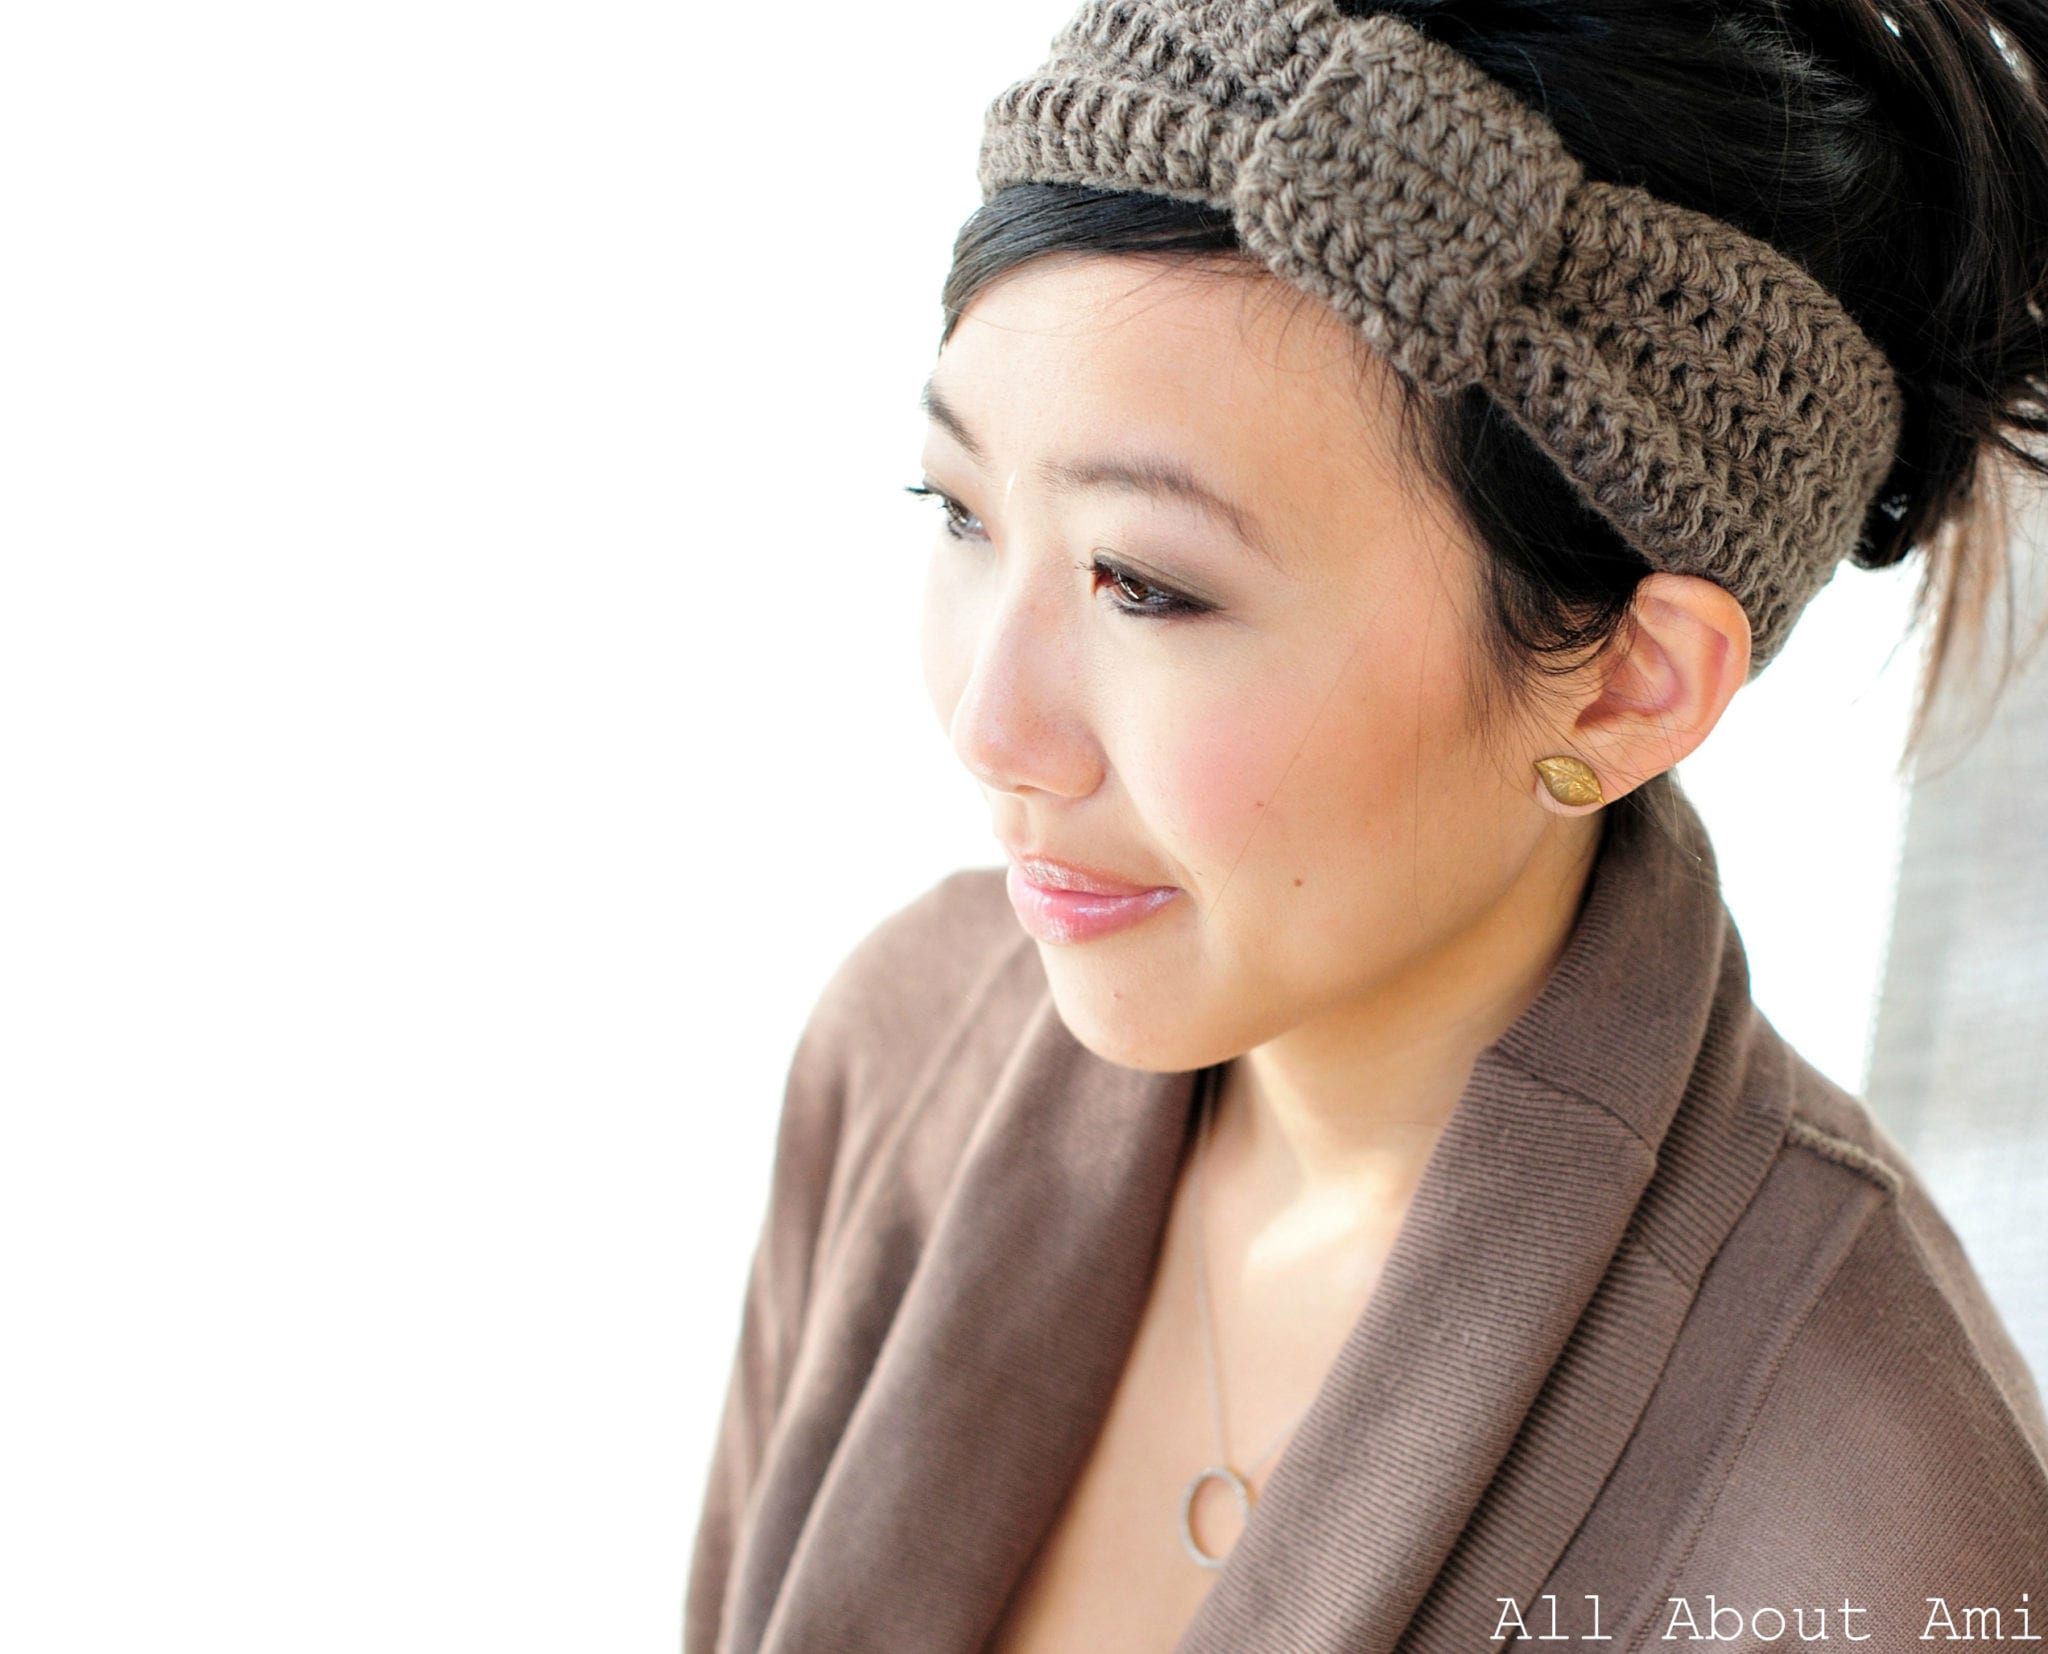 Knotted Headband - All About Ami b5ab241ba6a